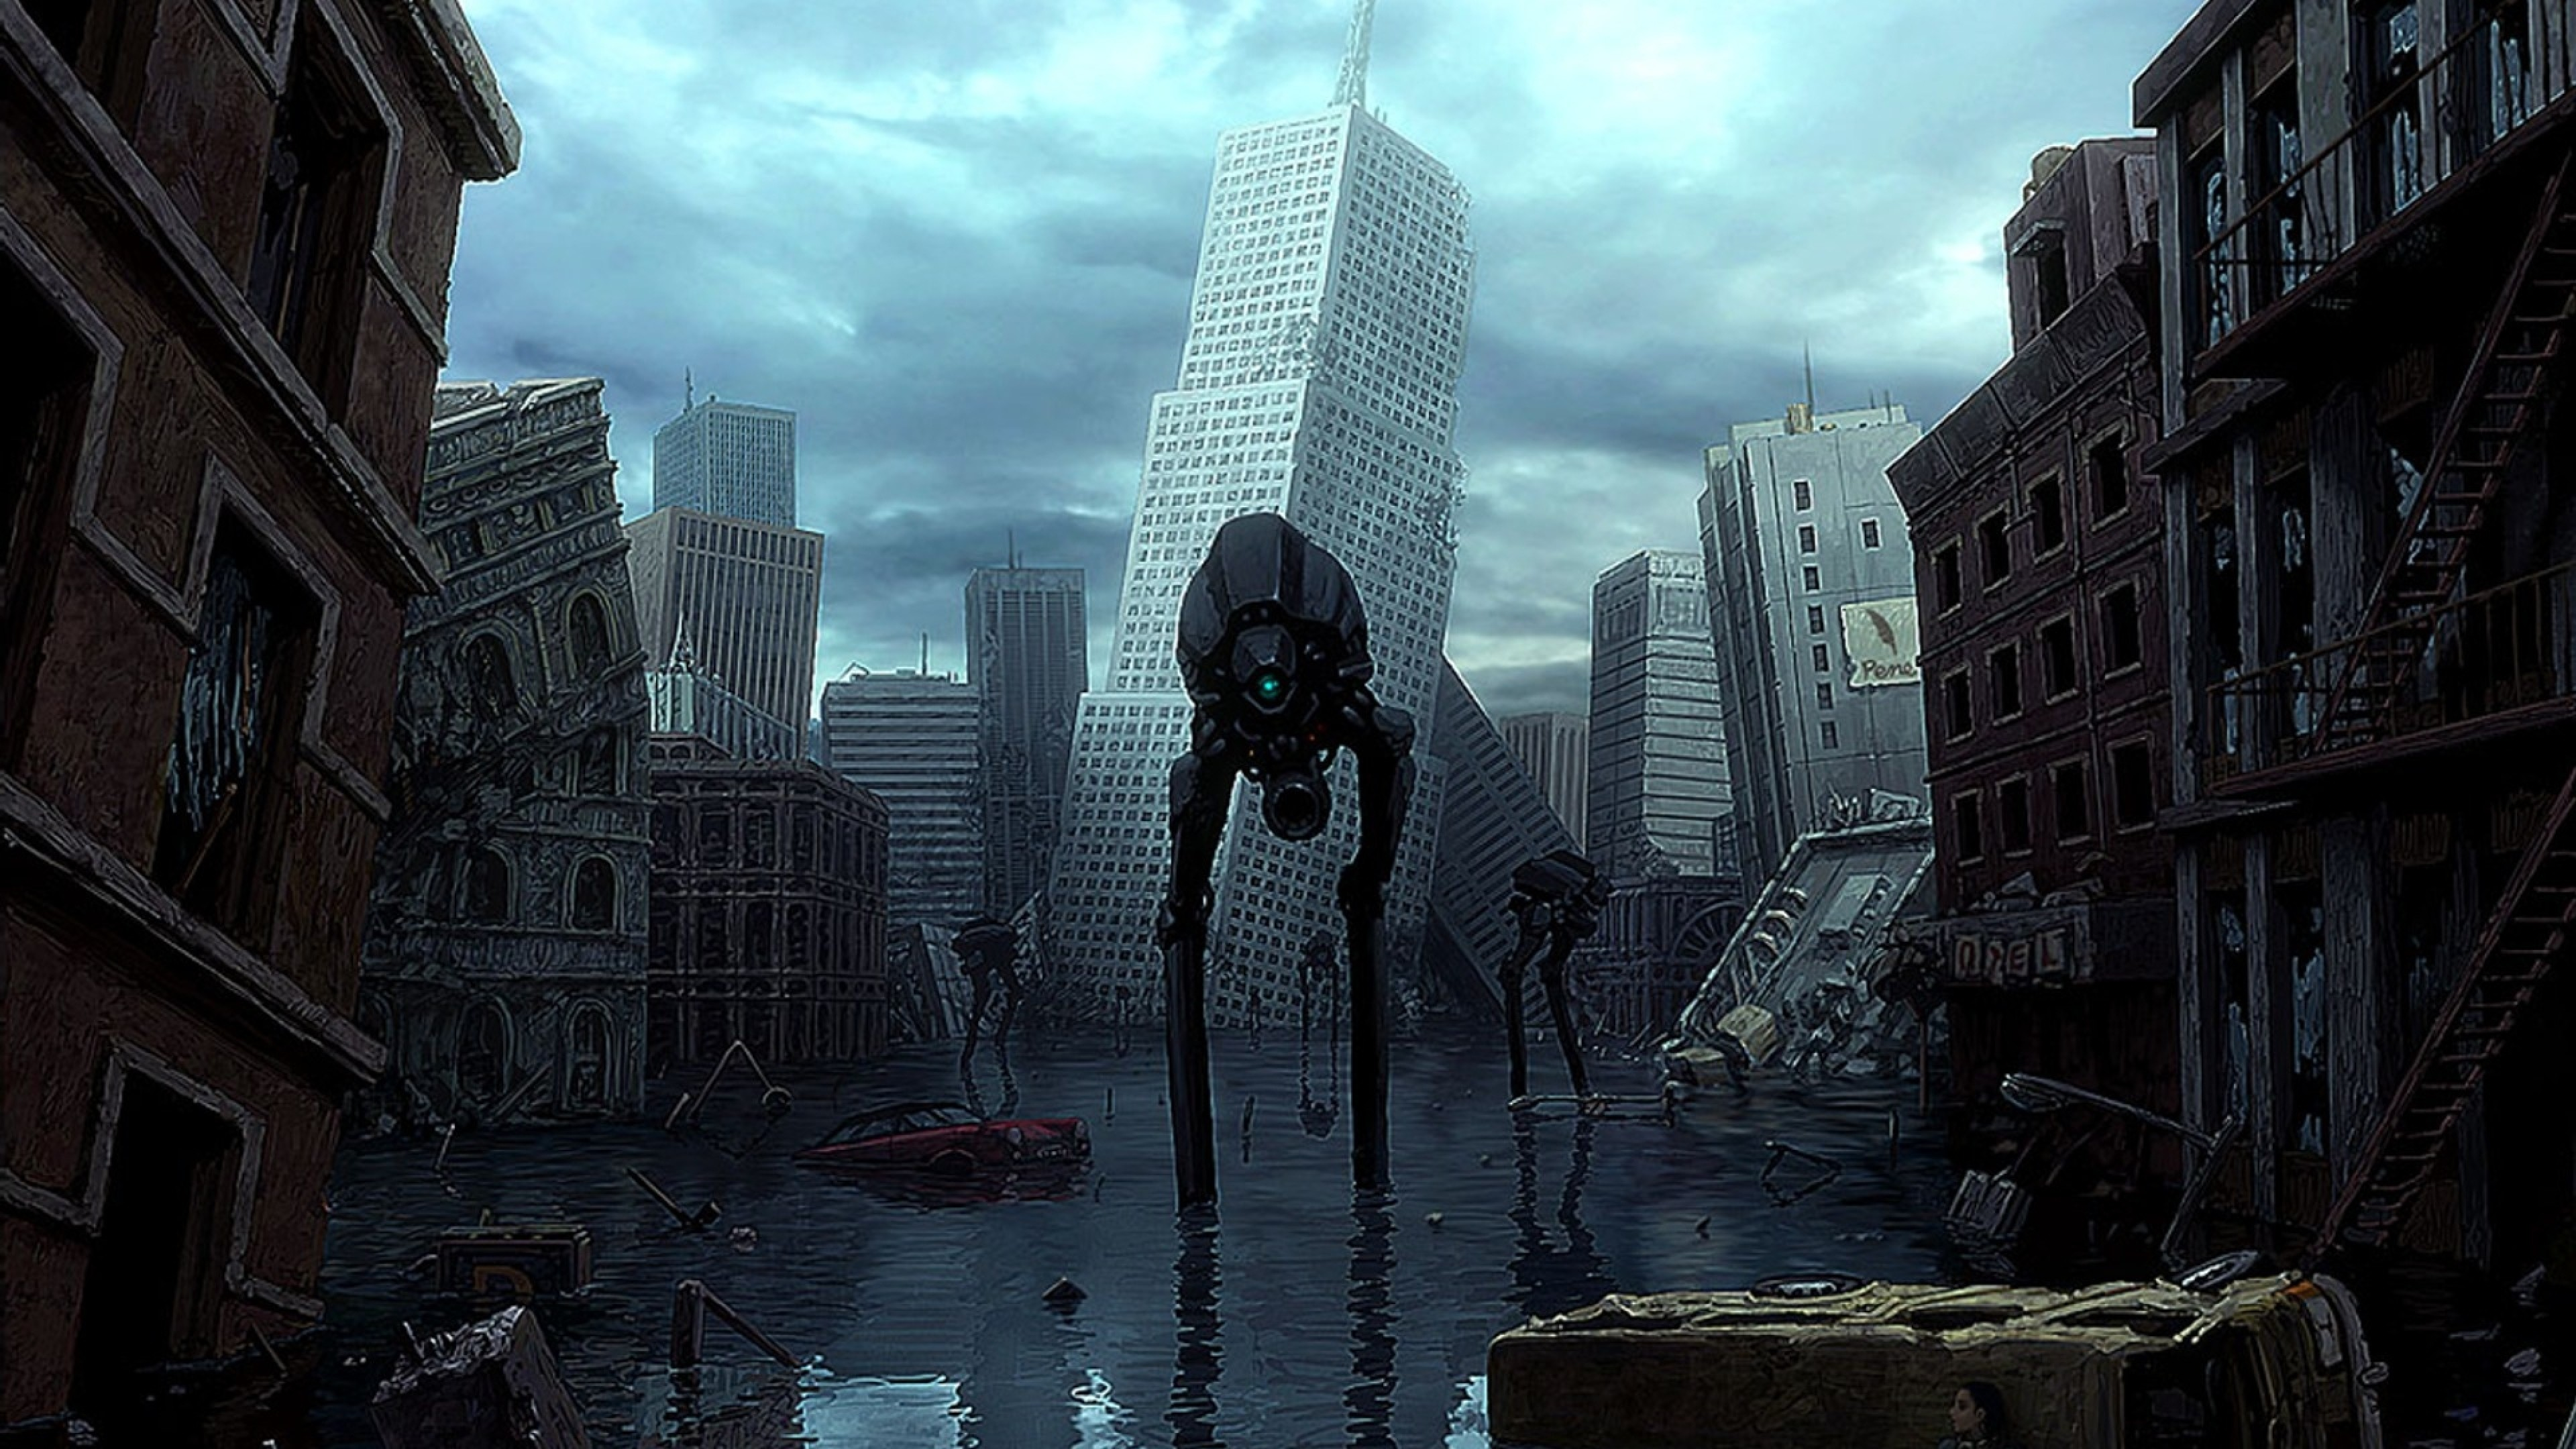 3840x2160  Wallpaper half-life, city, house, robots, water